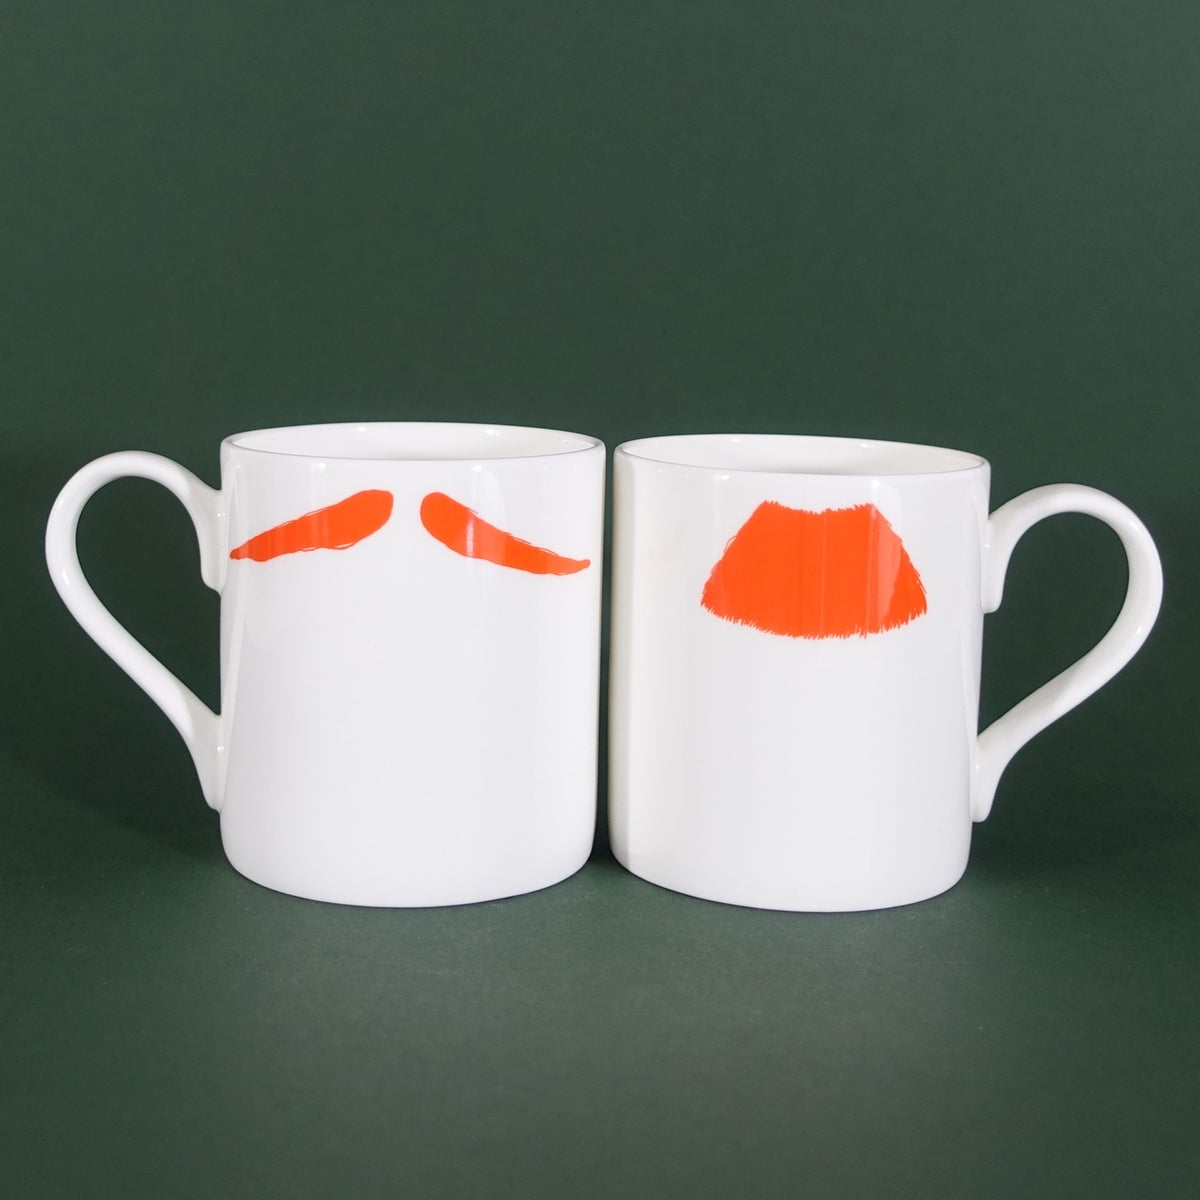 Image of Original Ginger Charlie Chaplin & Inspector Poirot Moustache Mug Pair - Set of Two